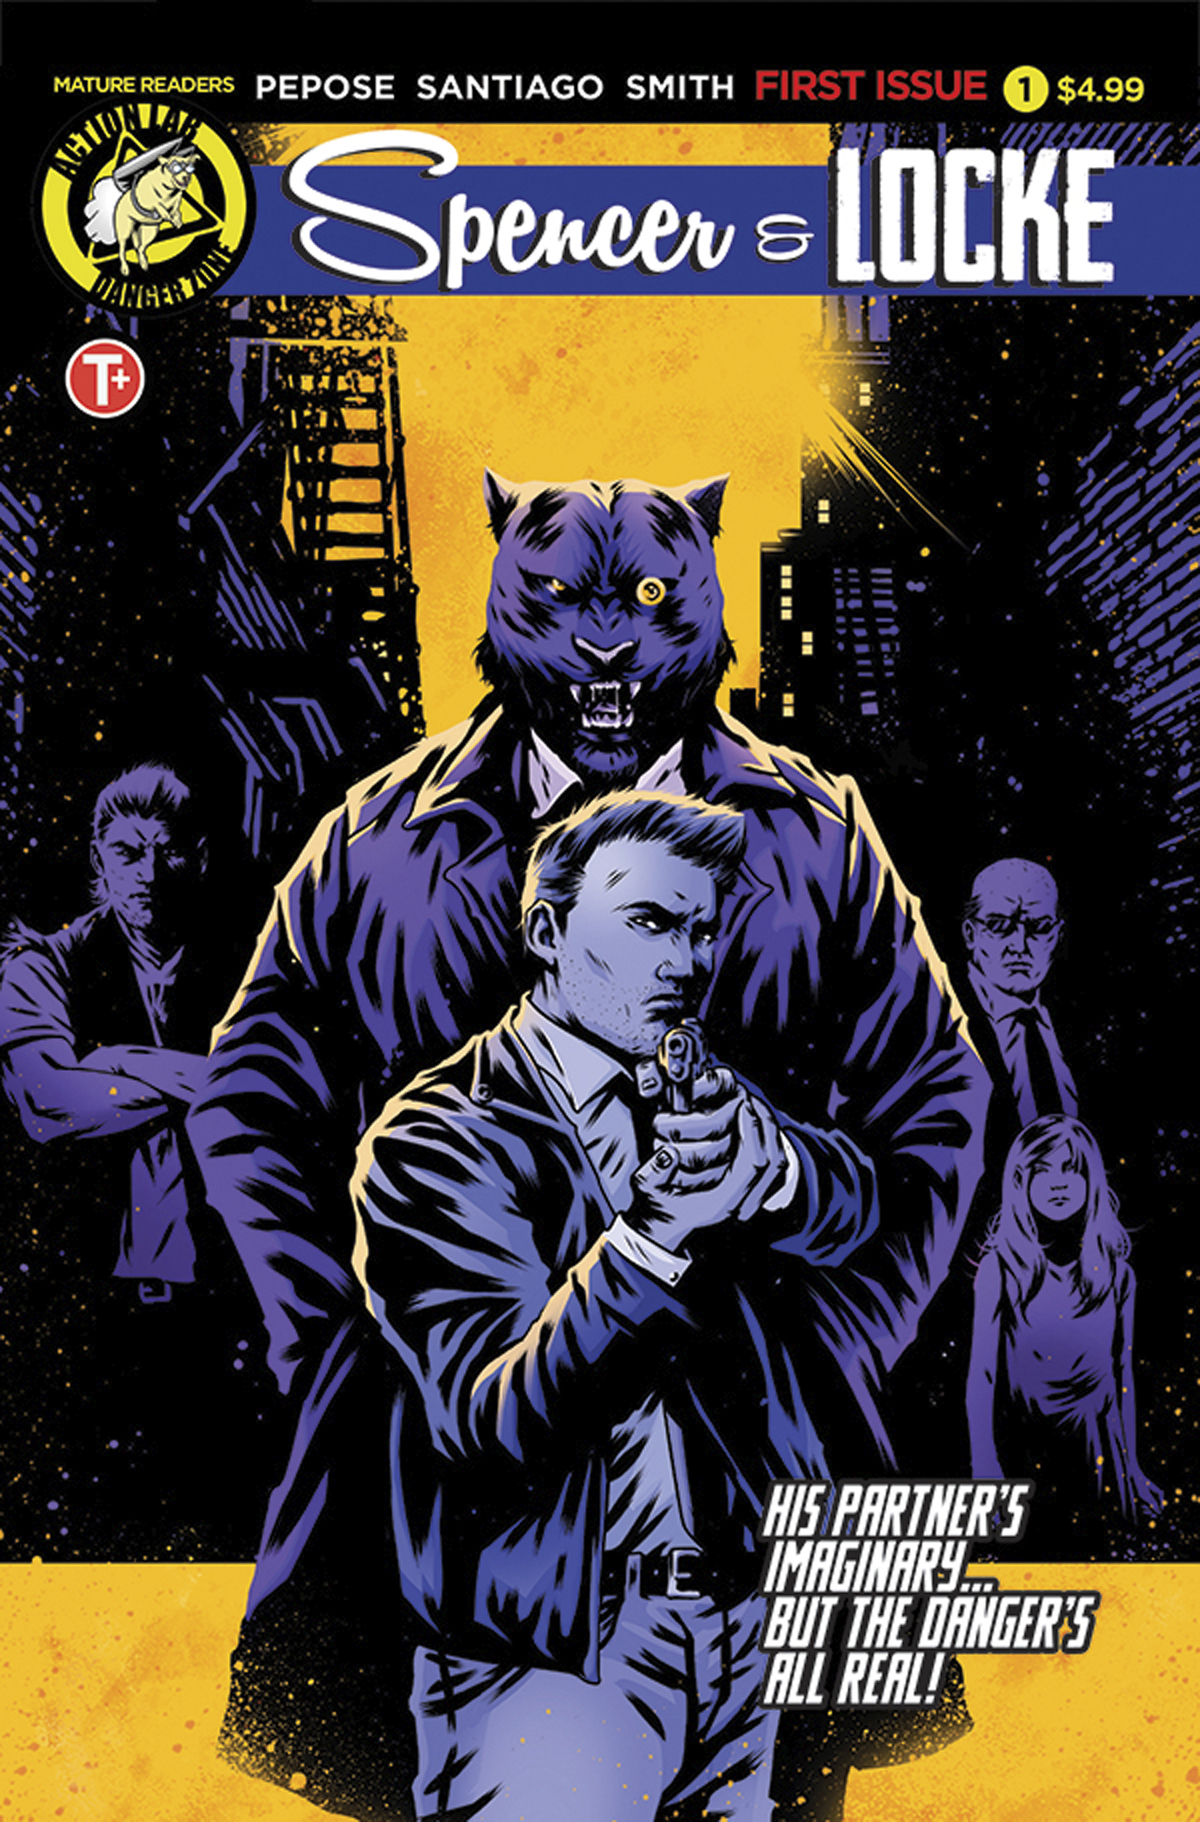 SPENCER AND LOCKE #1 (OF 4) CVR B HOUSE